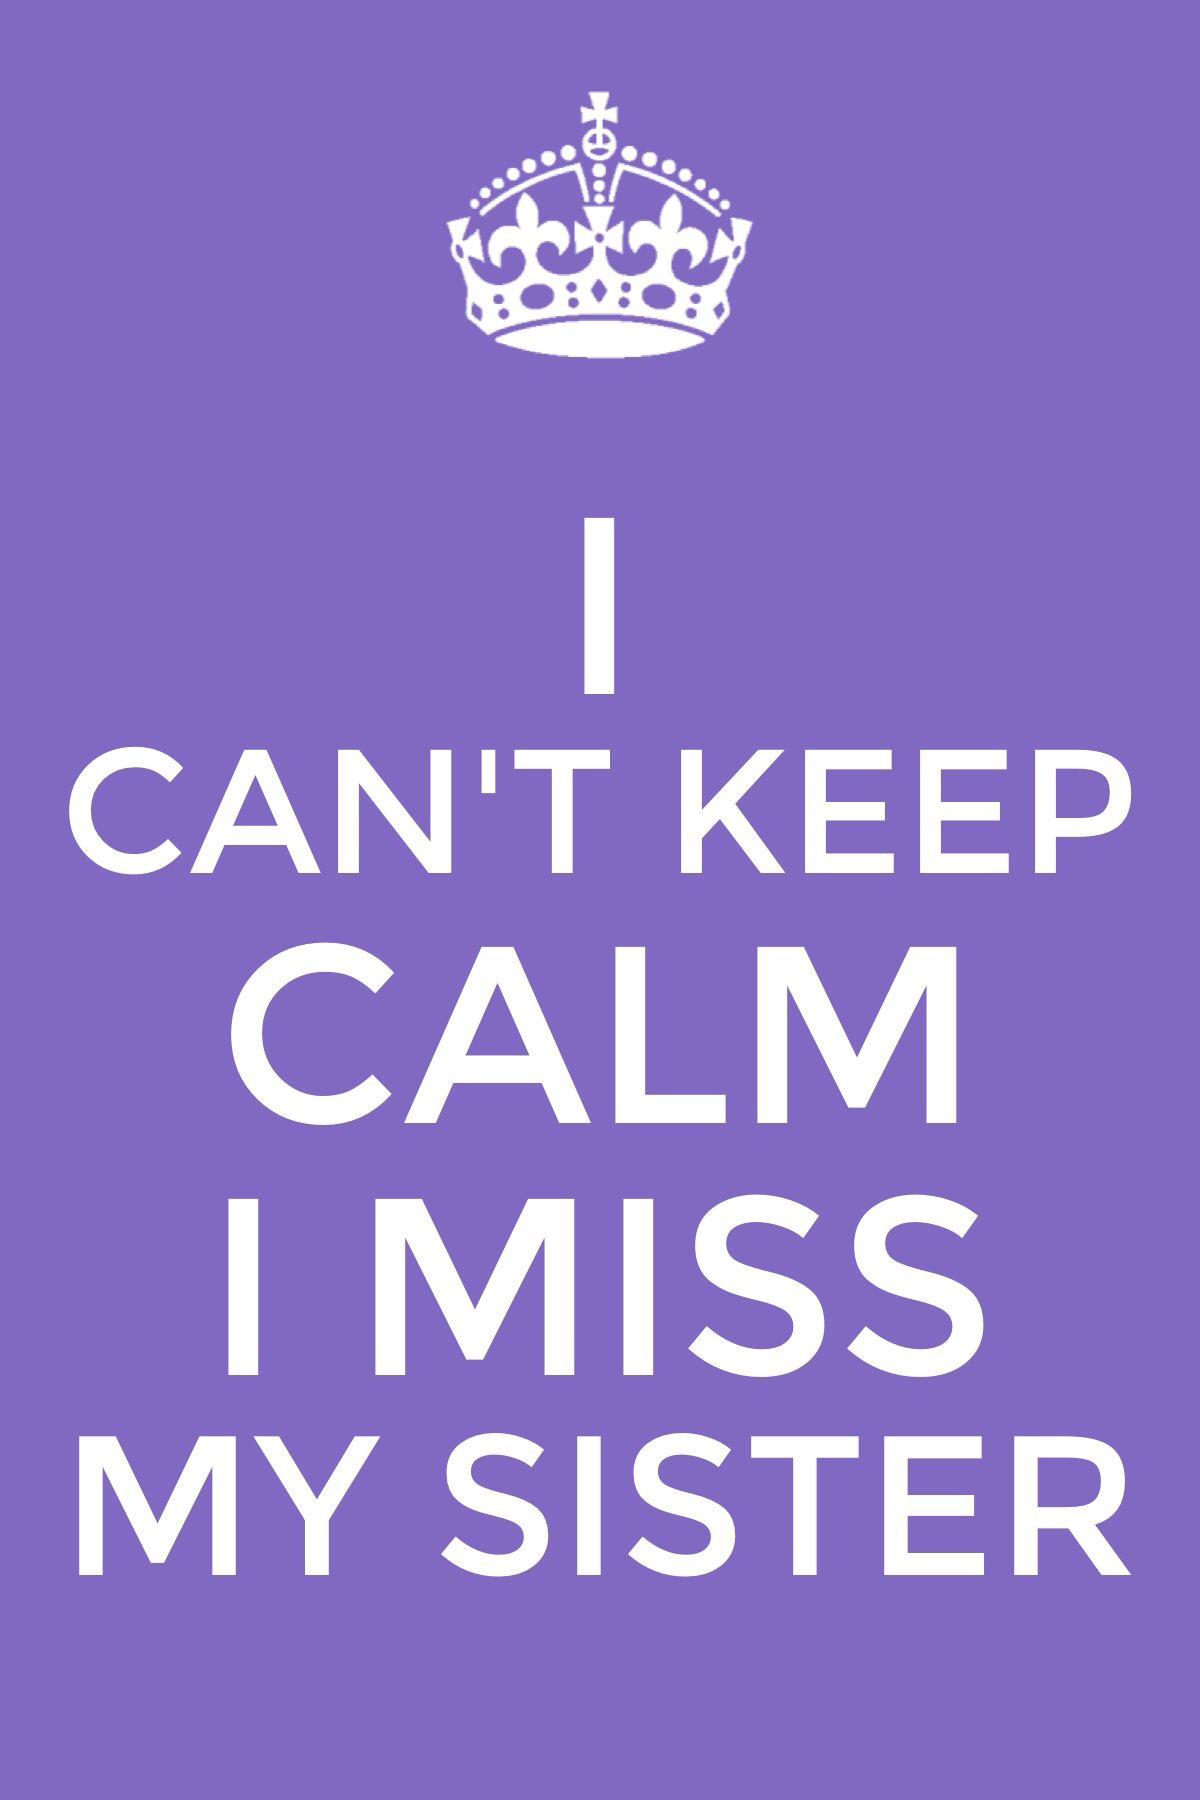 Pin By Shelbiegirl On Quotes Sister Quotes I Miss My Sister Sisters